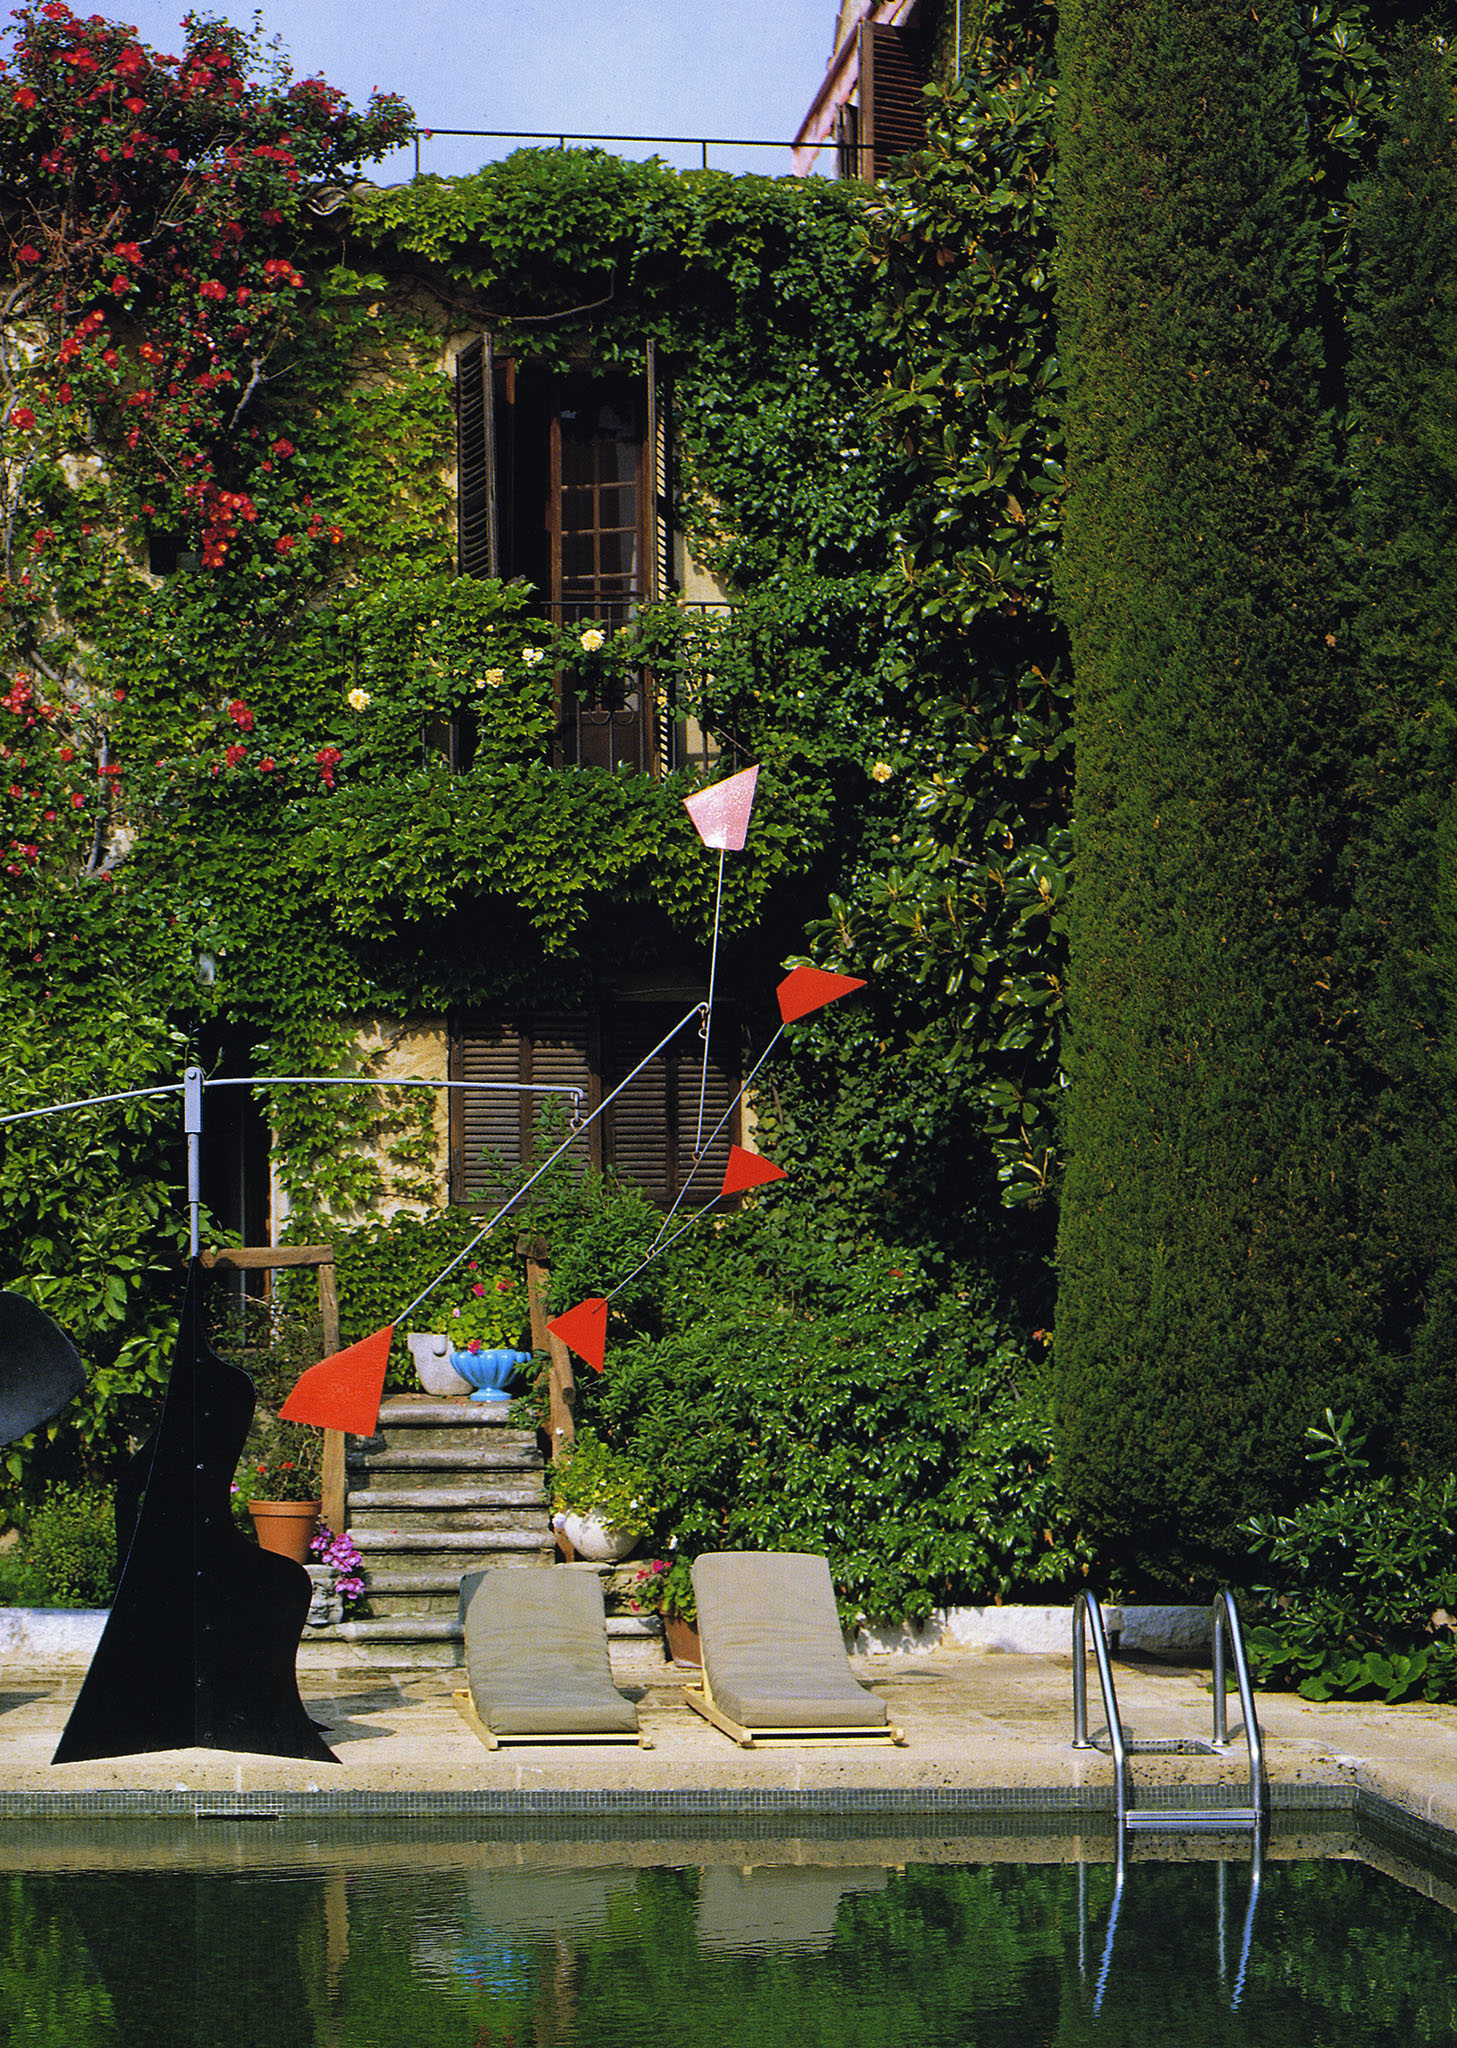 The Alexander Calder mobile by the pool of La Colombe d'Or.